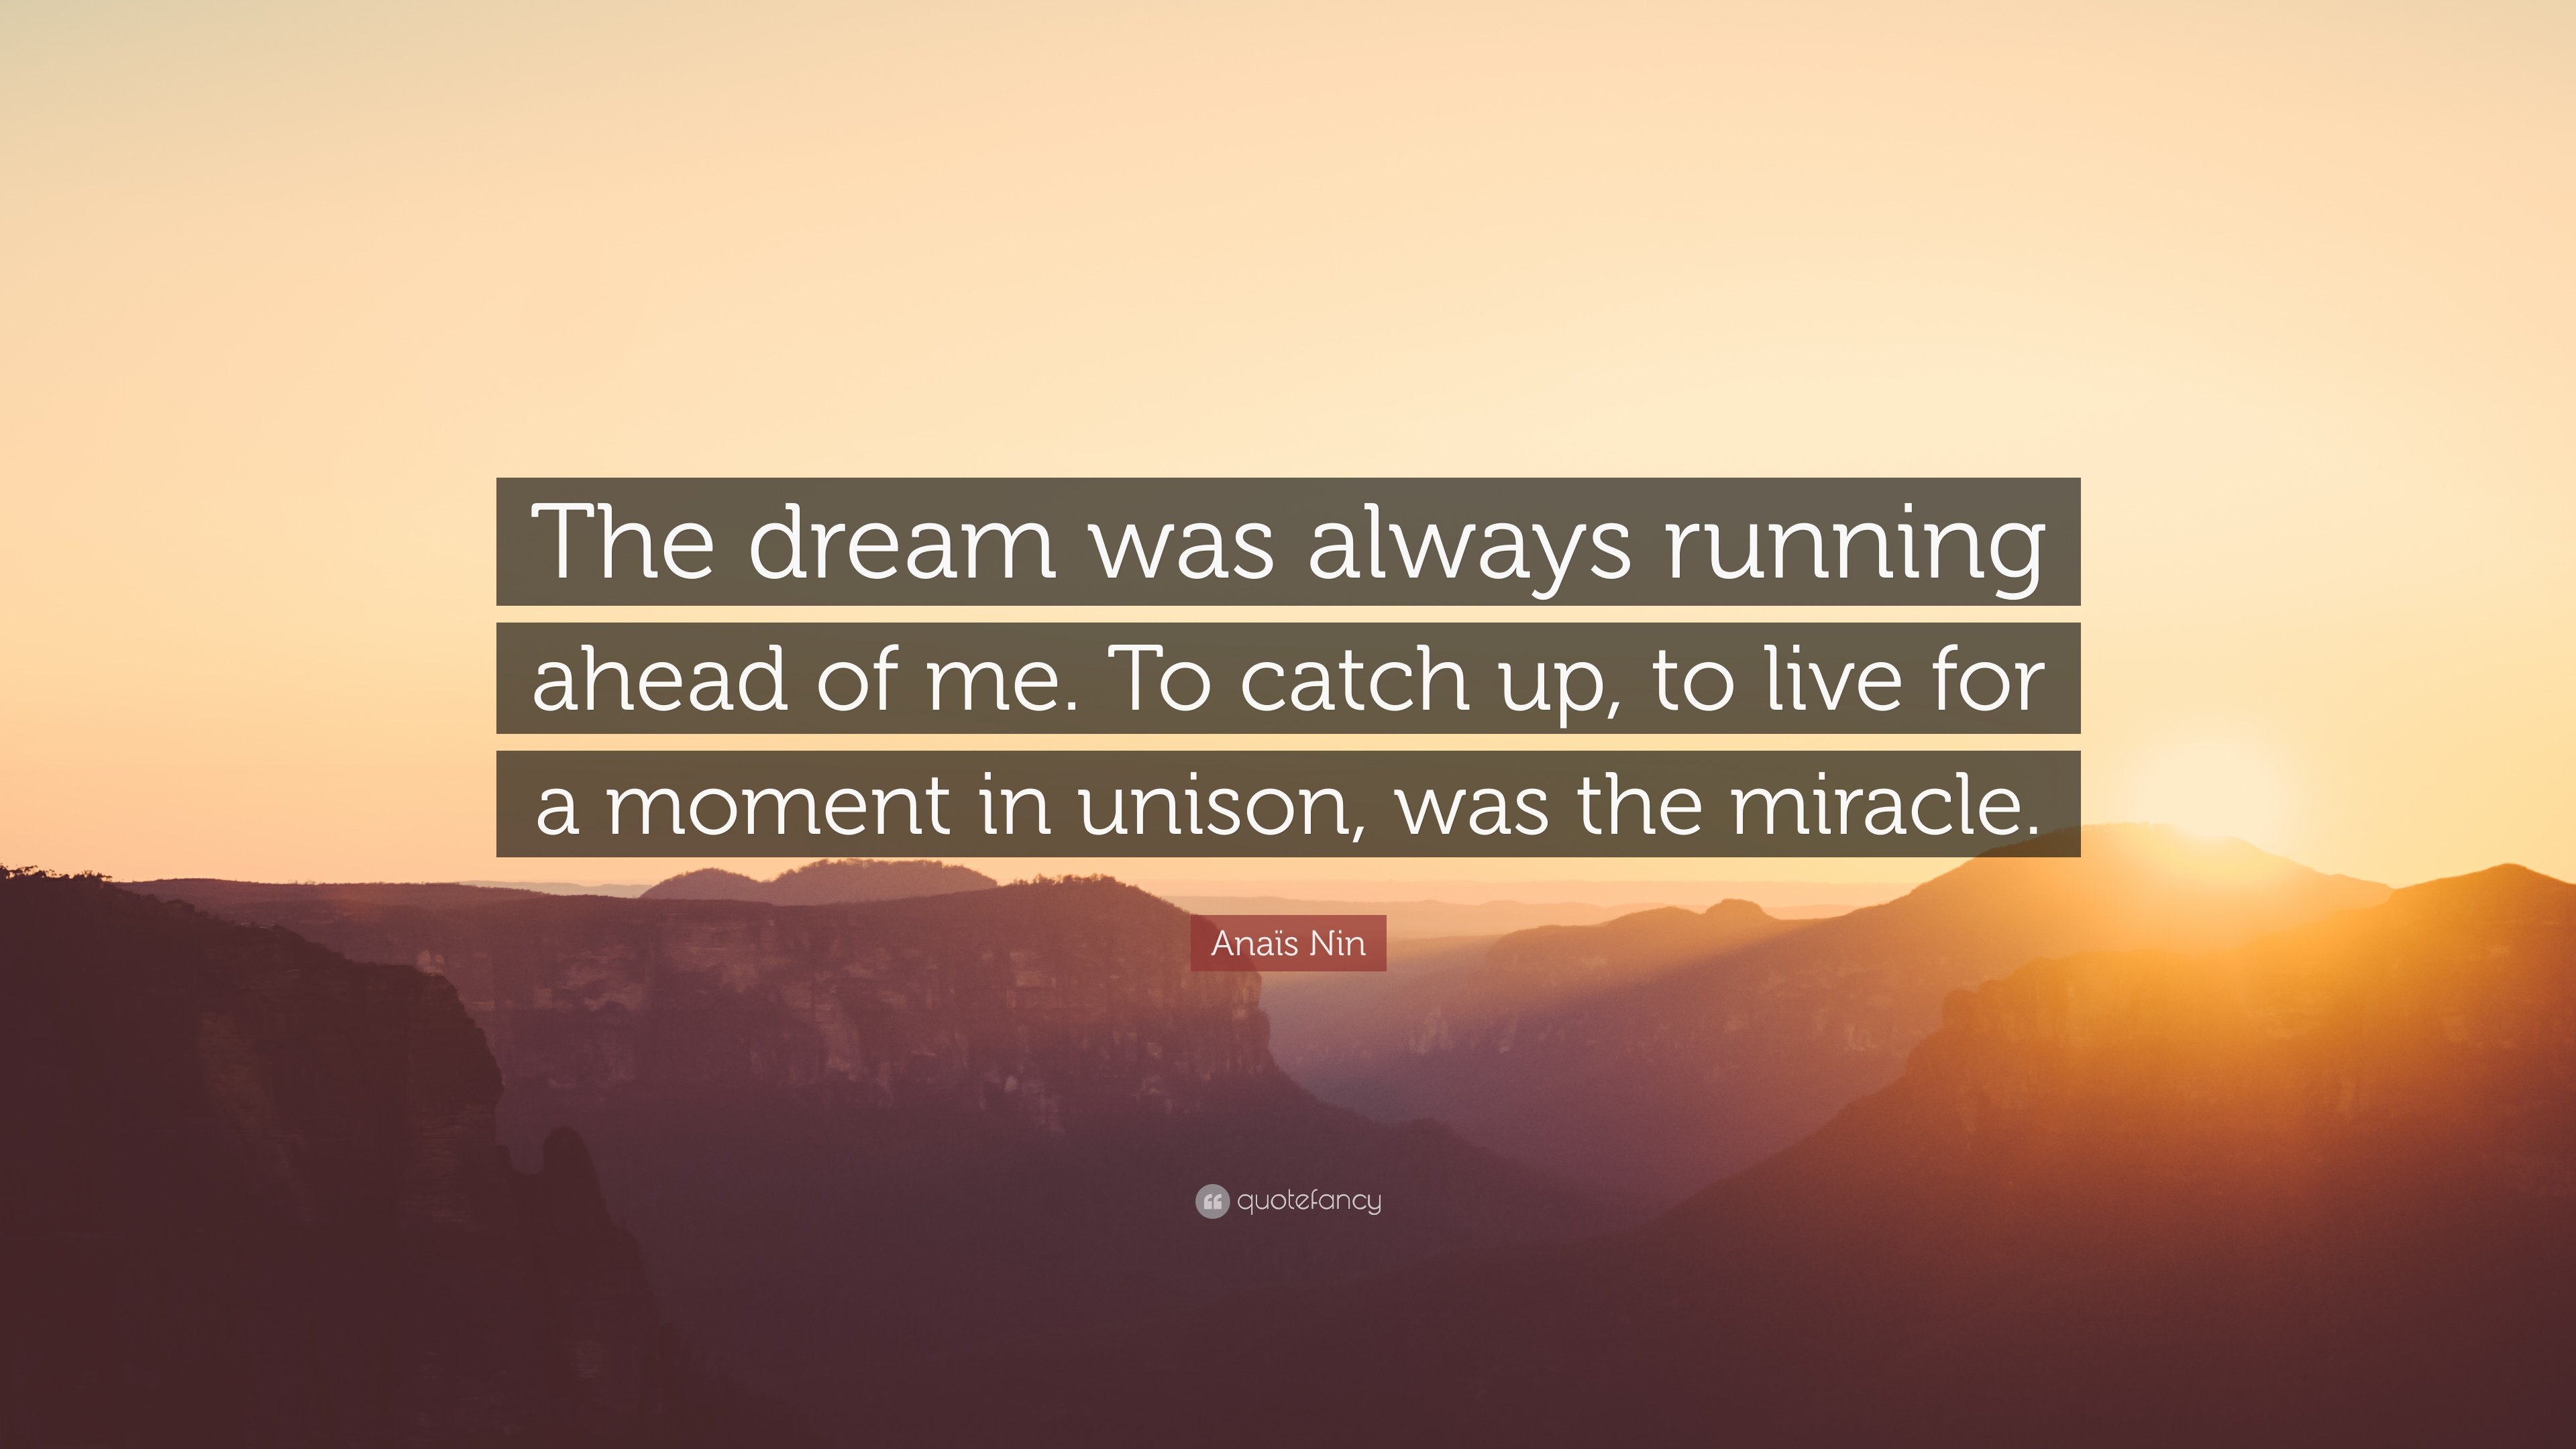 Ordinaire Anaïs Nin Quote: U201cThe Dream Was Always Running Ahead Of Me. To Catch